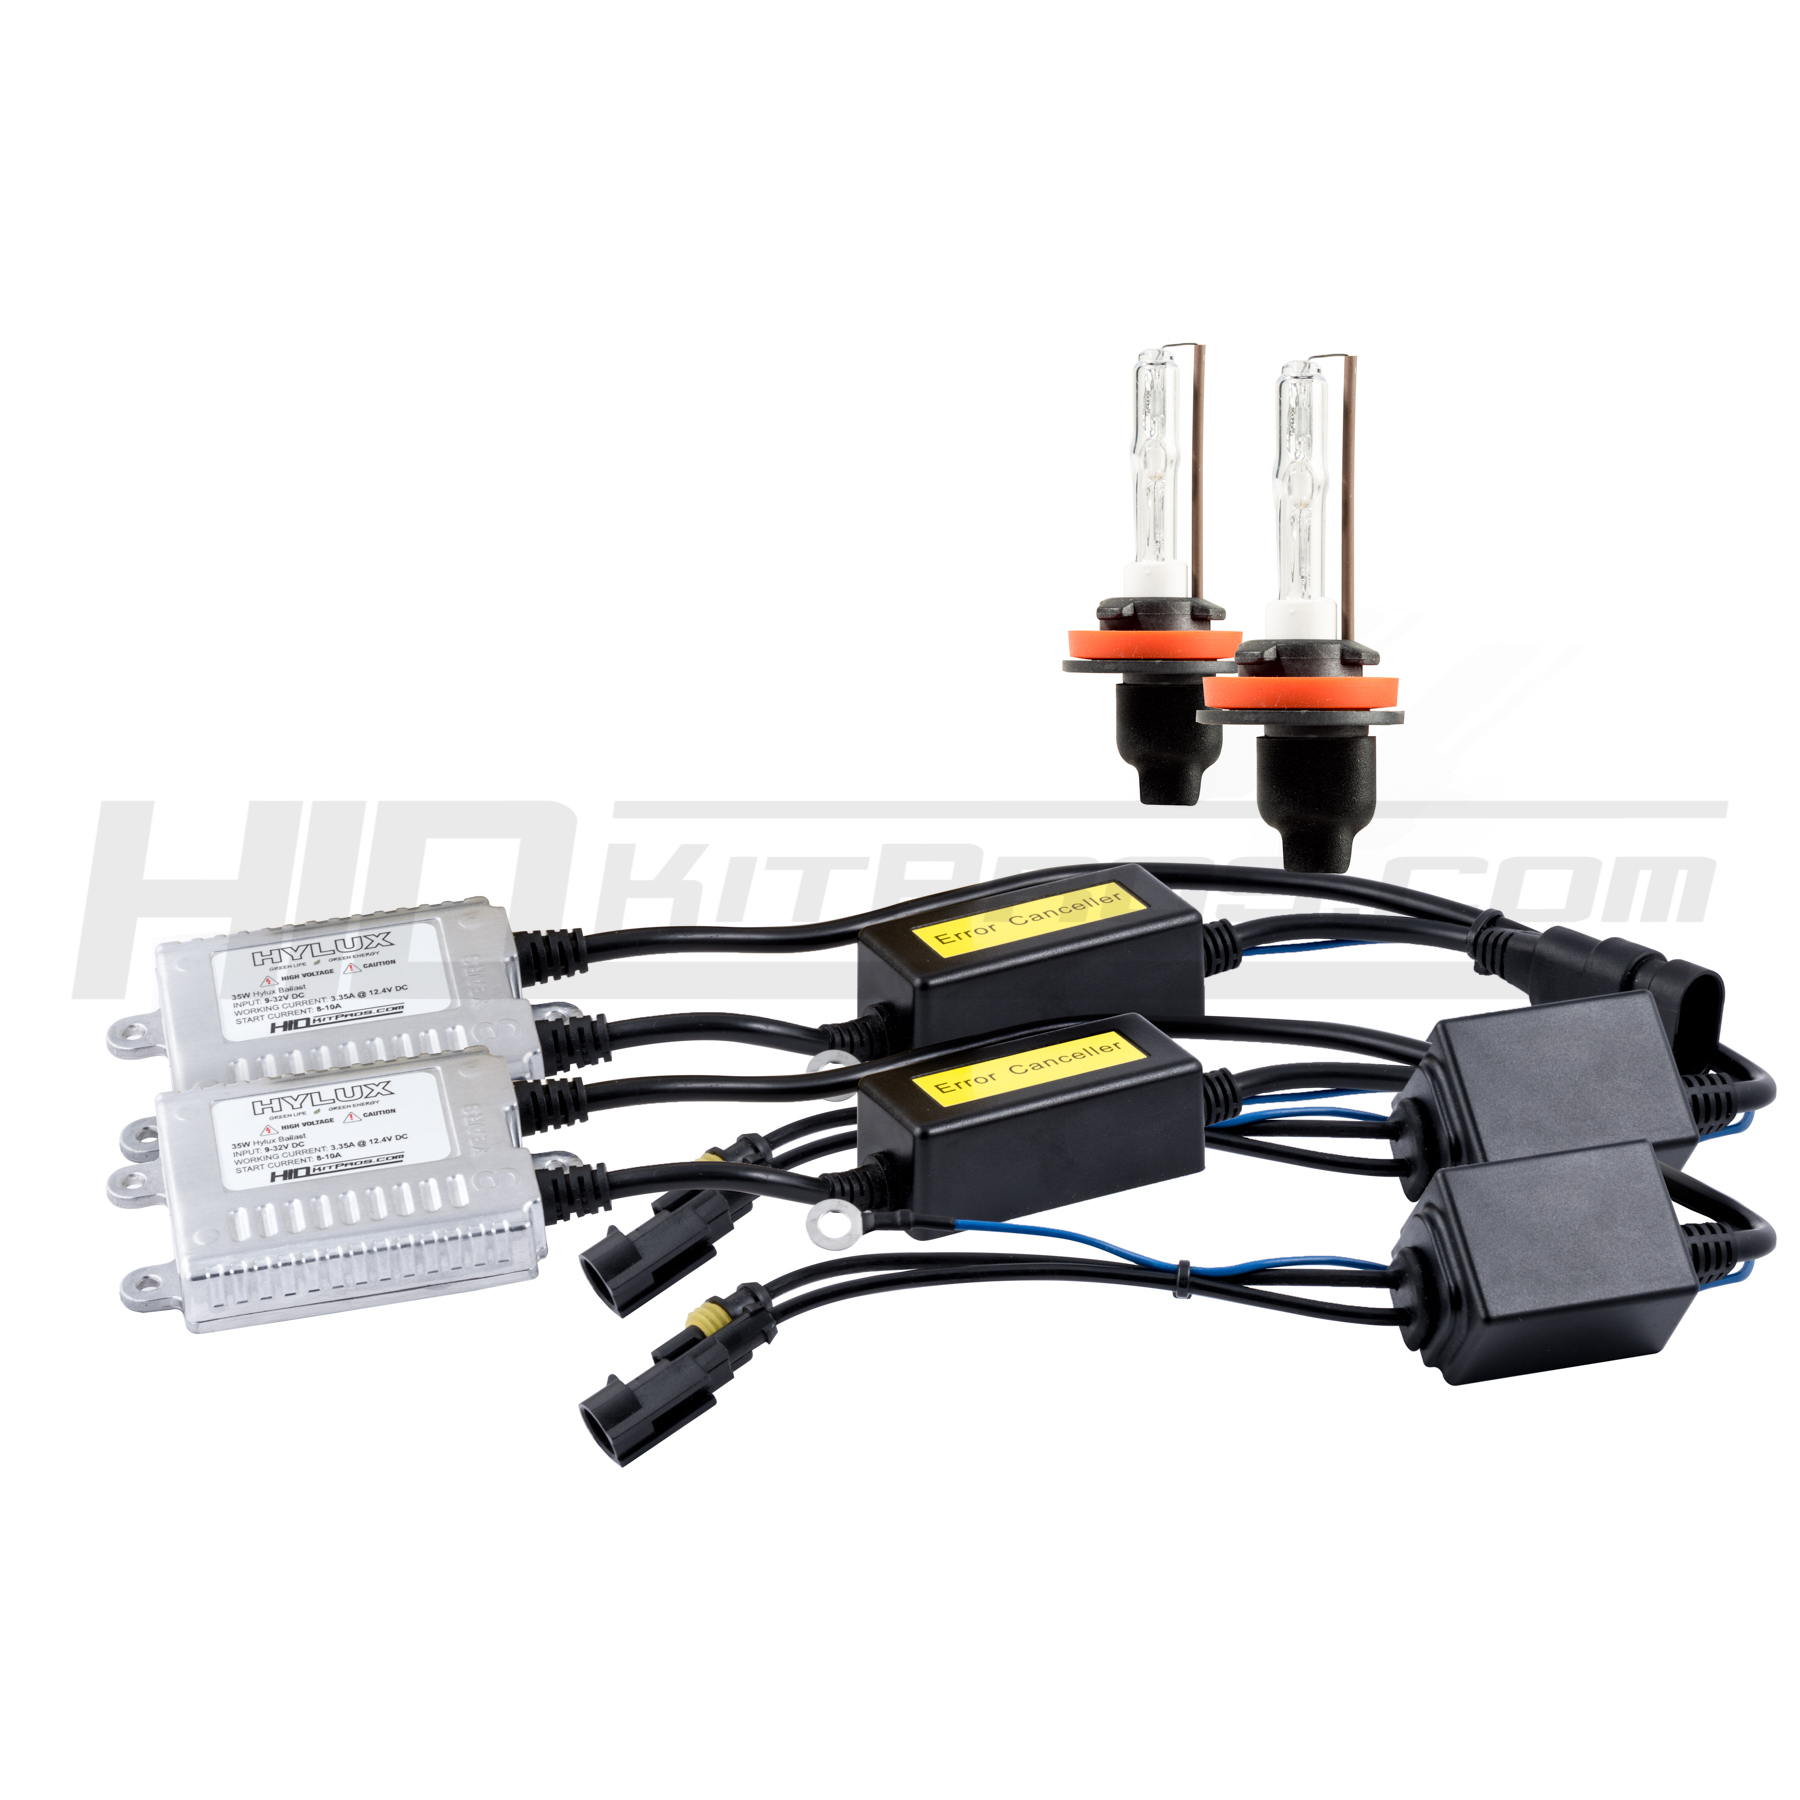 Silverado Xenon Hid Wiring h13 wiring diagram hid reader ... on project diagram, h13 bulb wiring, h13 hid wiring, h13 connector diagram, dodge oem parts diagram,